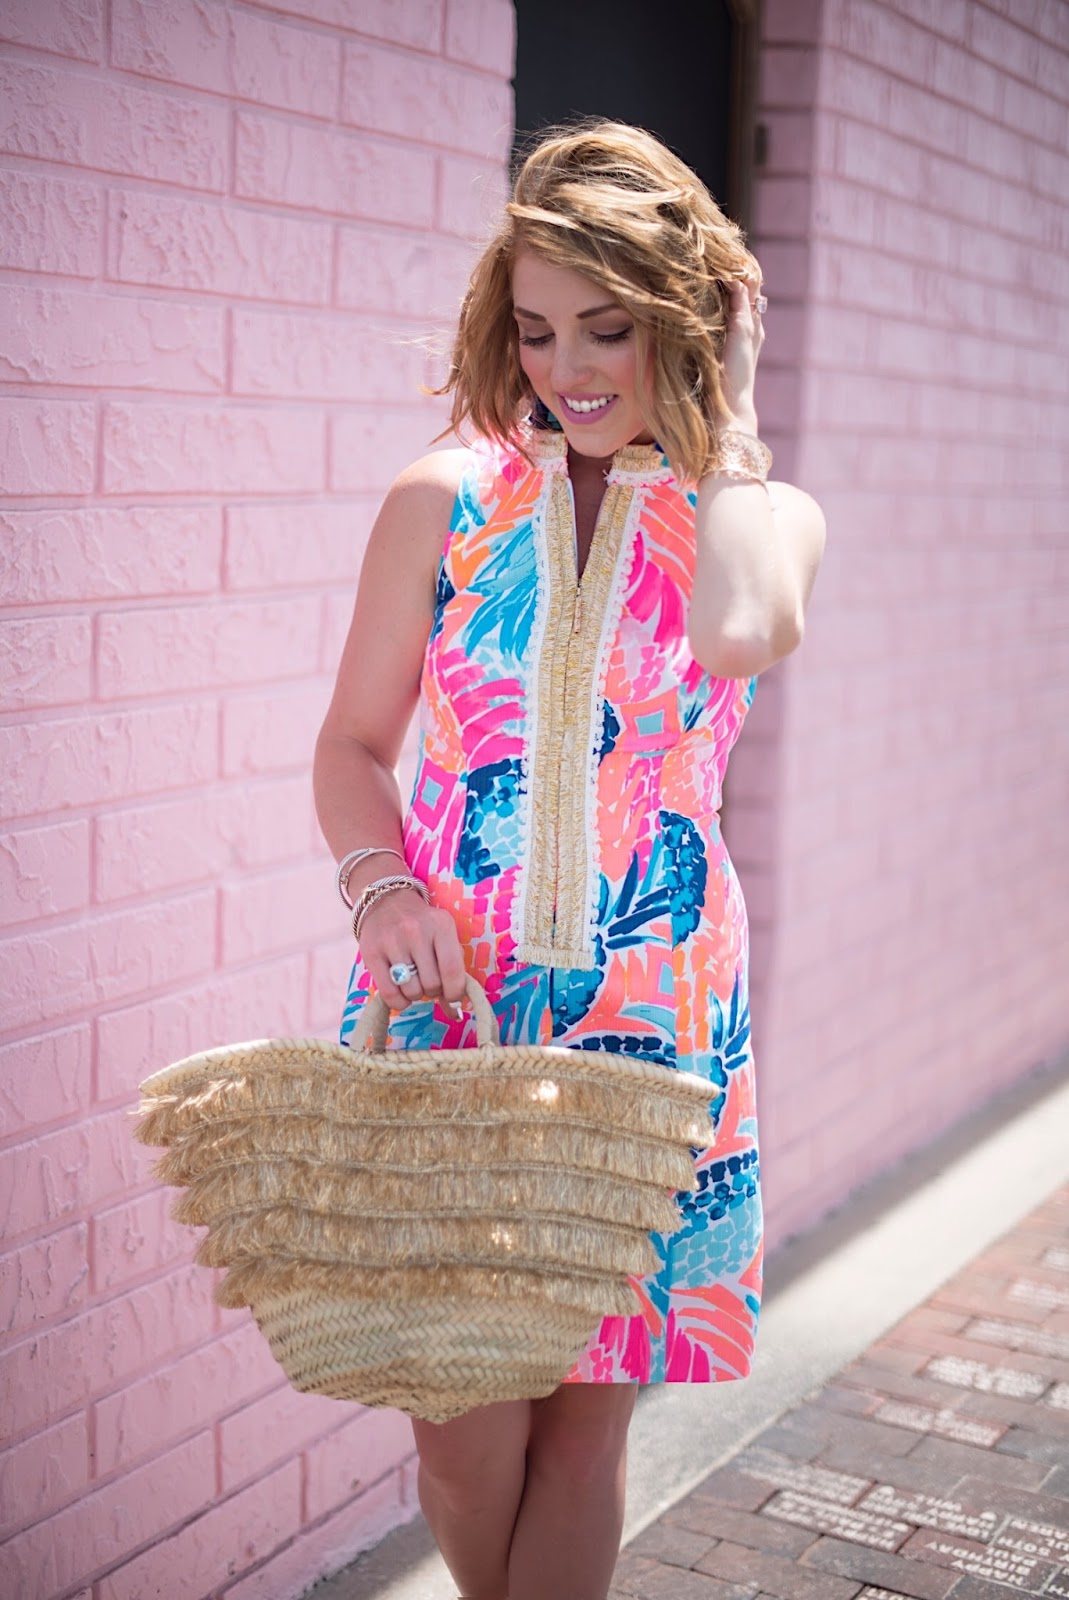 Lilly Pulitzer Alexa Shift Dress - Click through to see more on Something Delightful Blog!